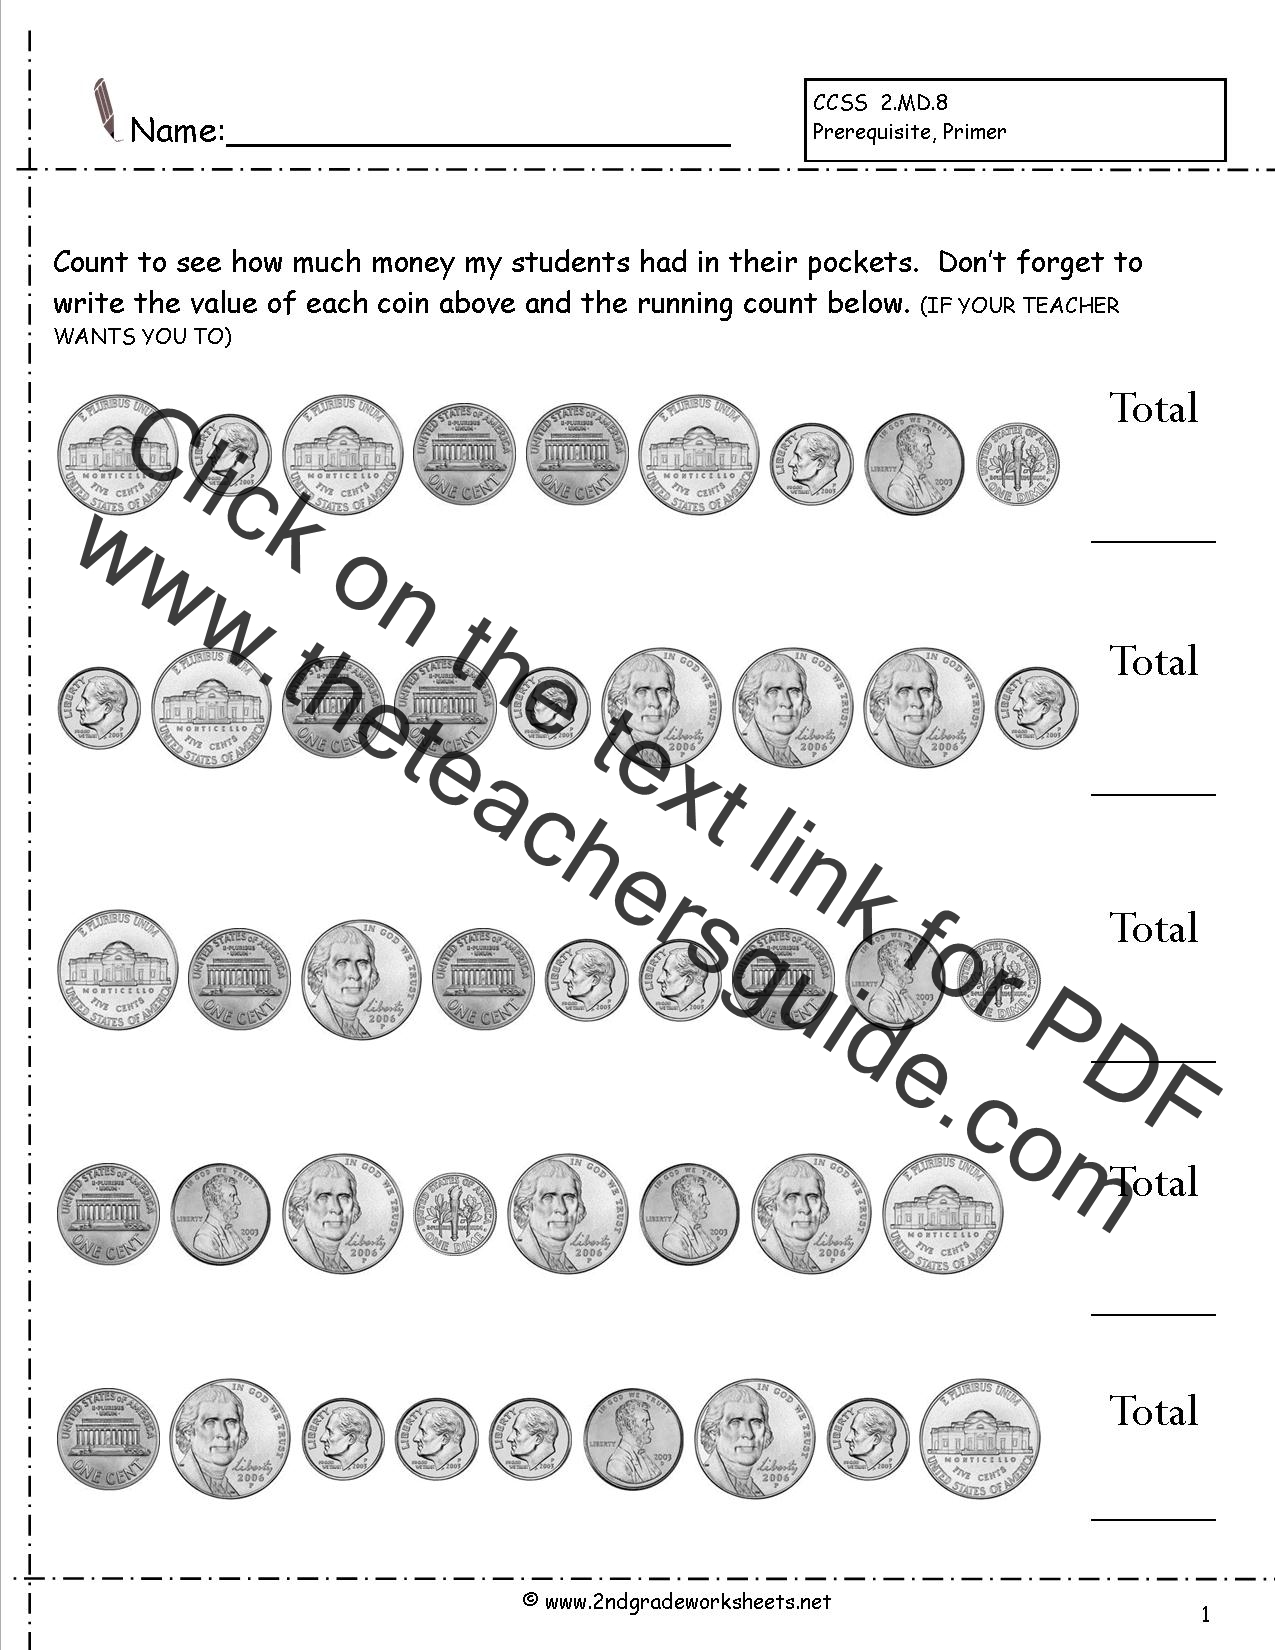 Common Core Math Worksheets First Grade Common core state standards: 2